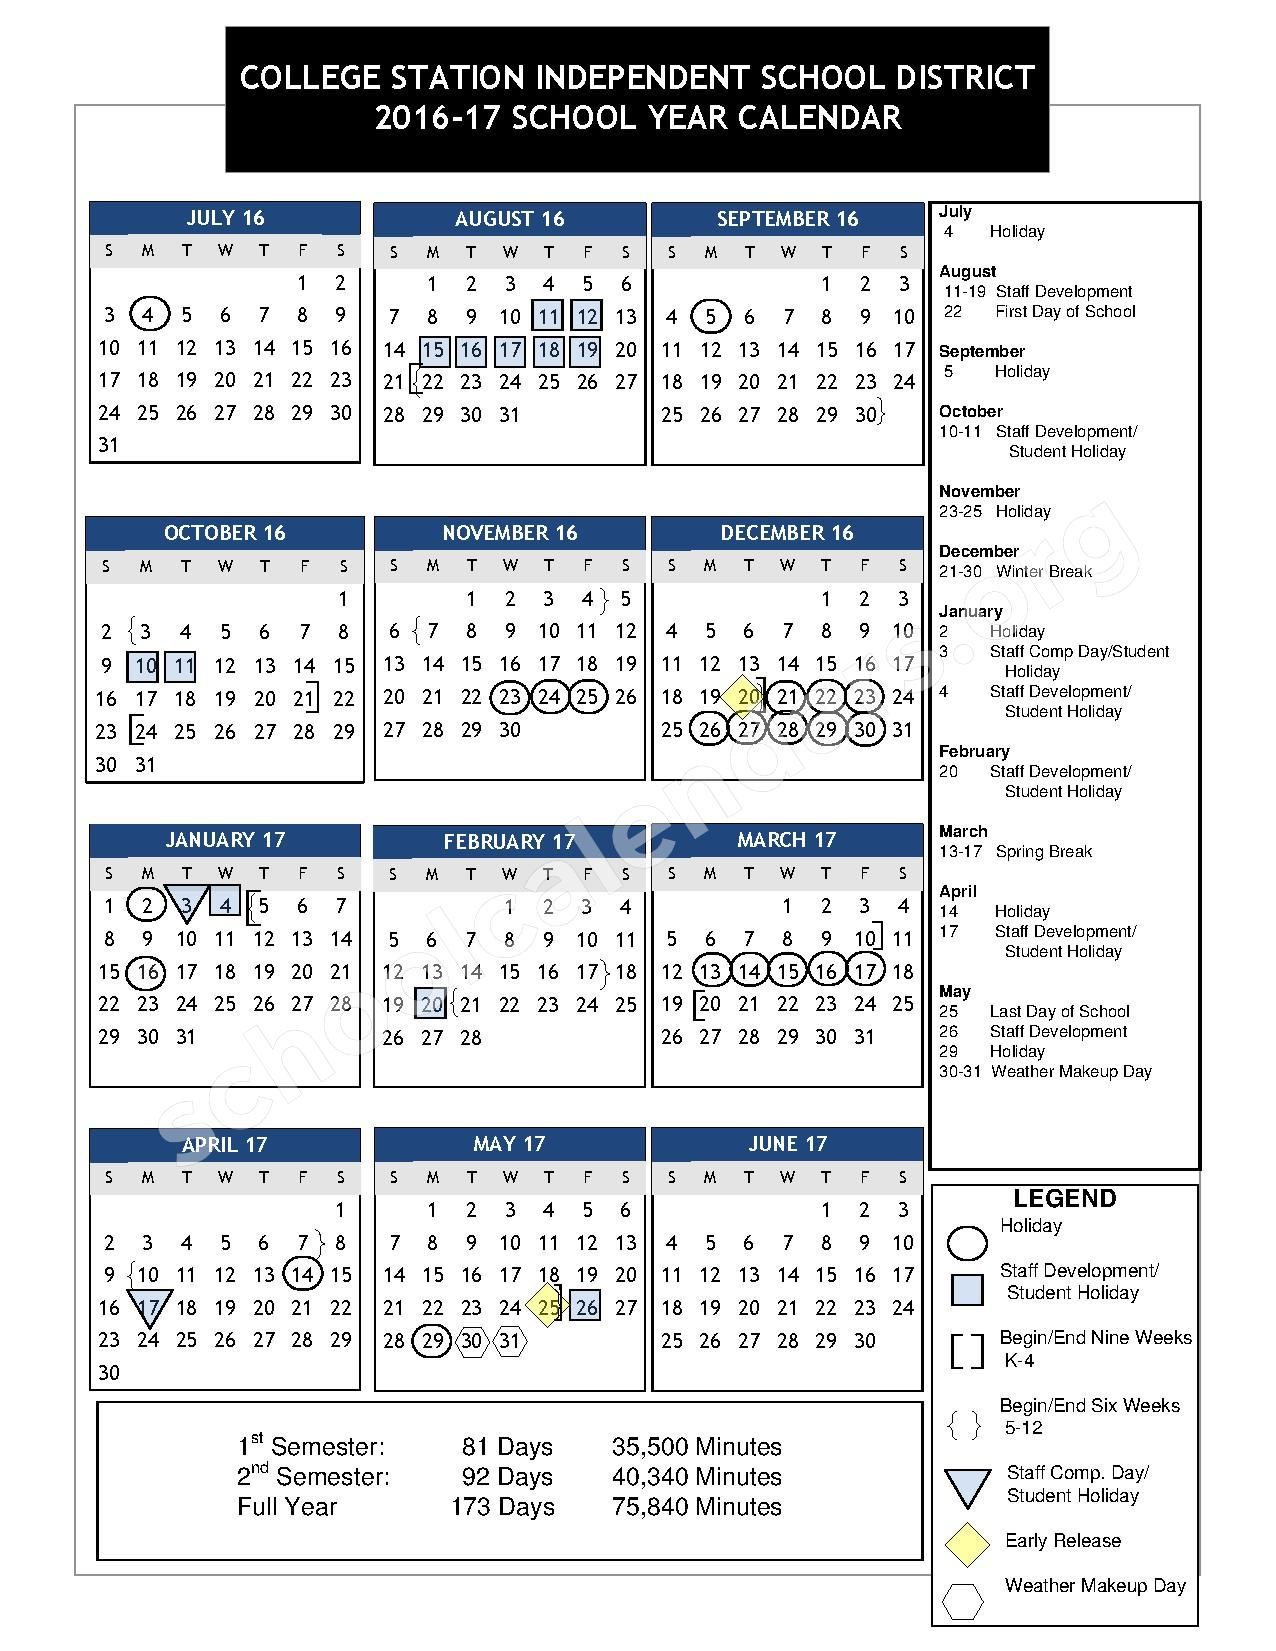 2016 - 2017 School Calendar – College Station Independent School District – page 1